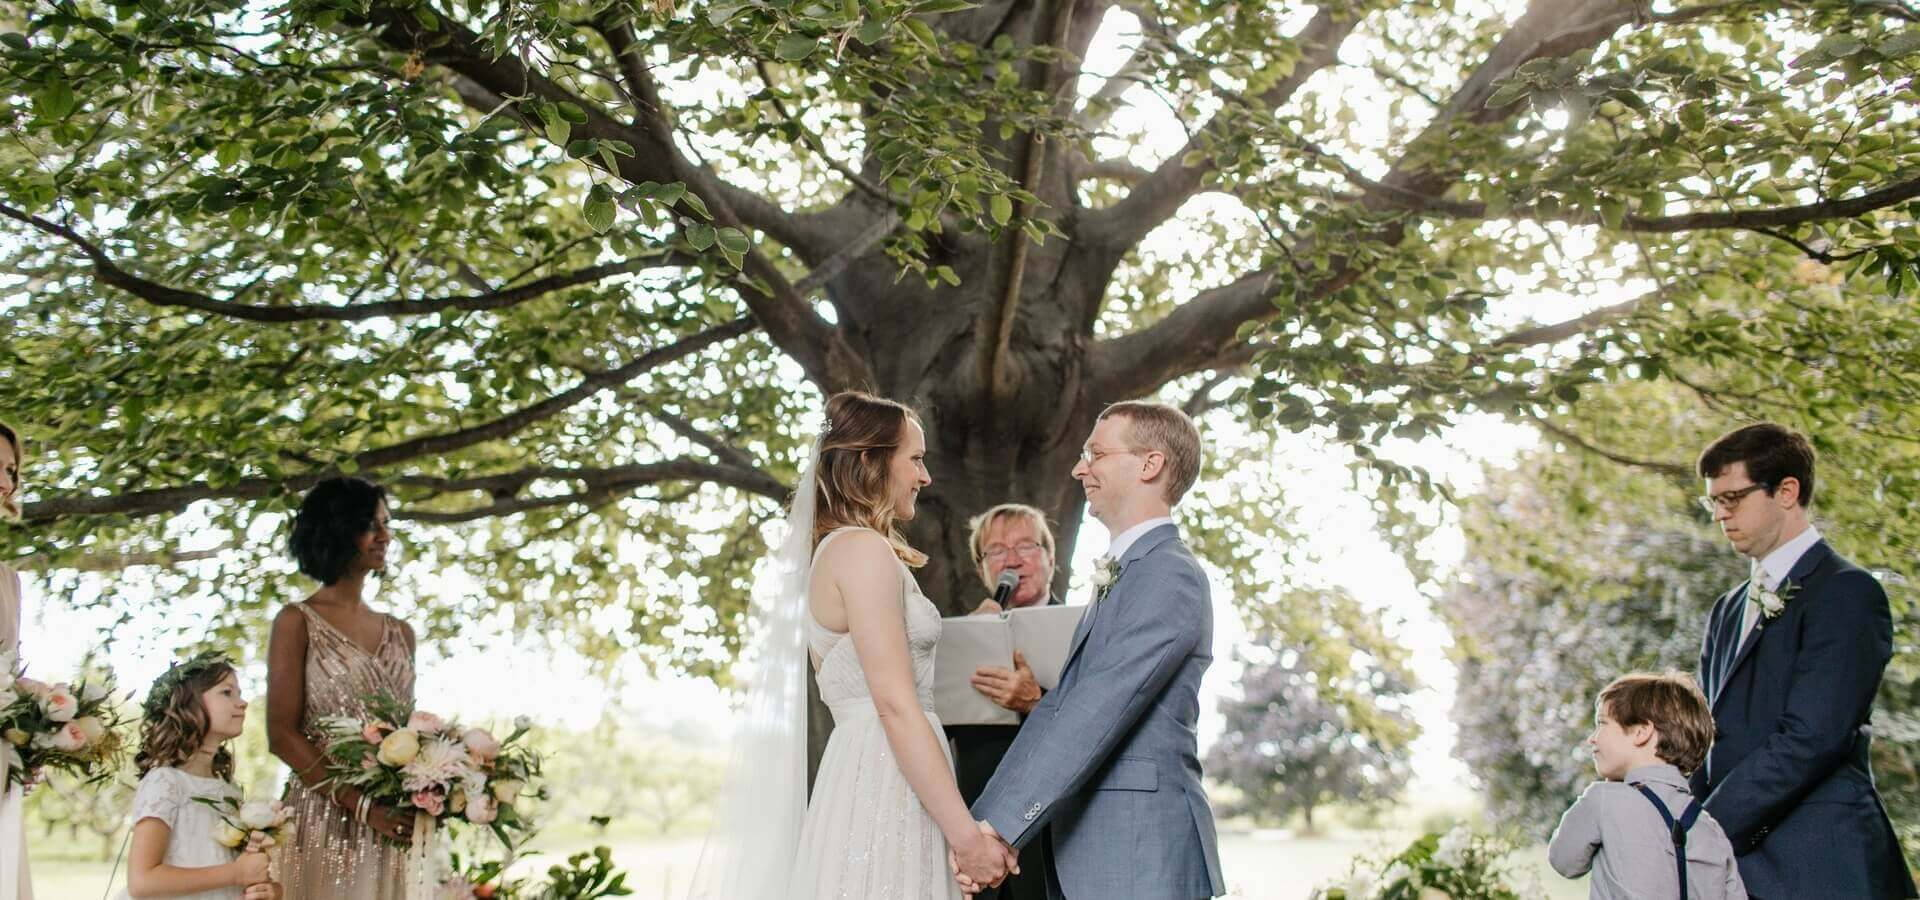 Hero image for Rebecca and Zeb's Magical Wedding at Cherry Avenue Farms